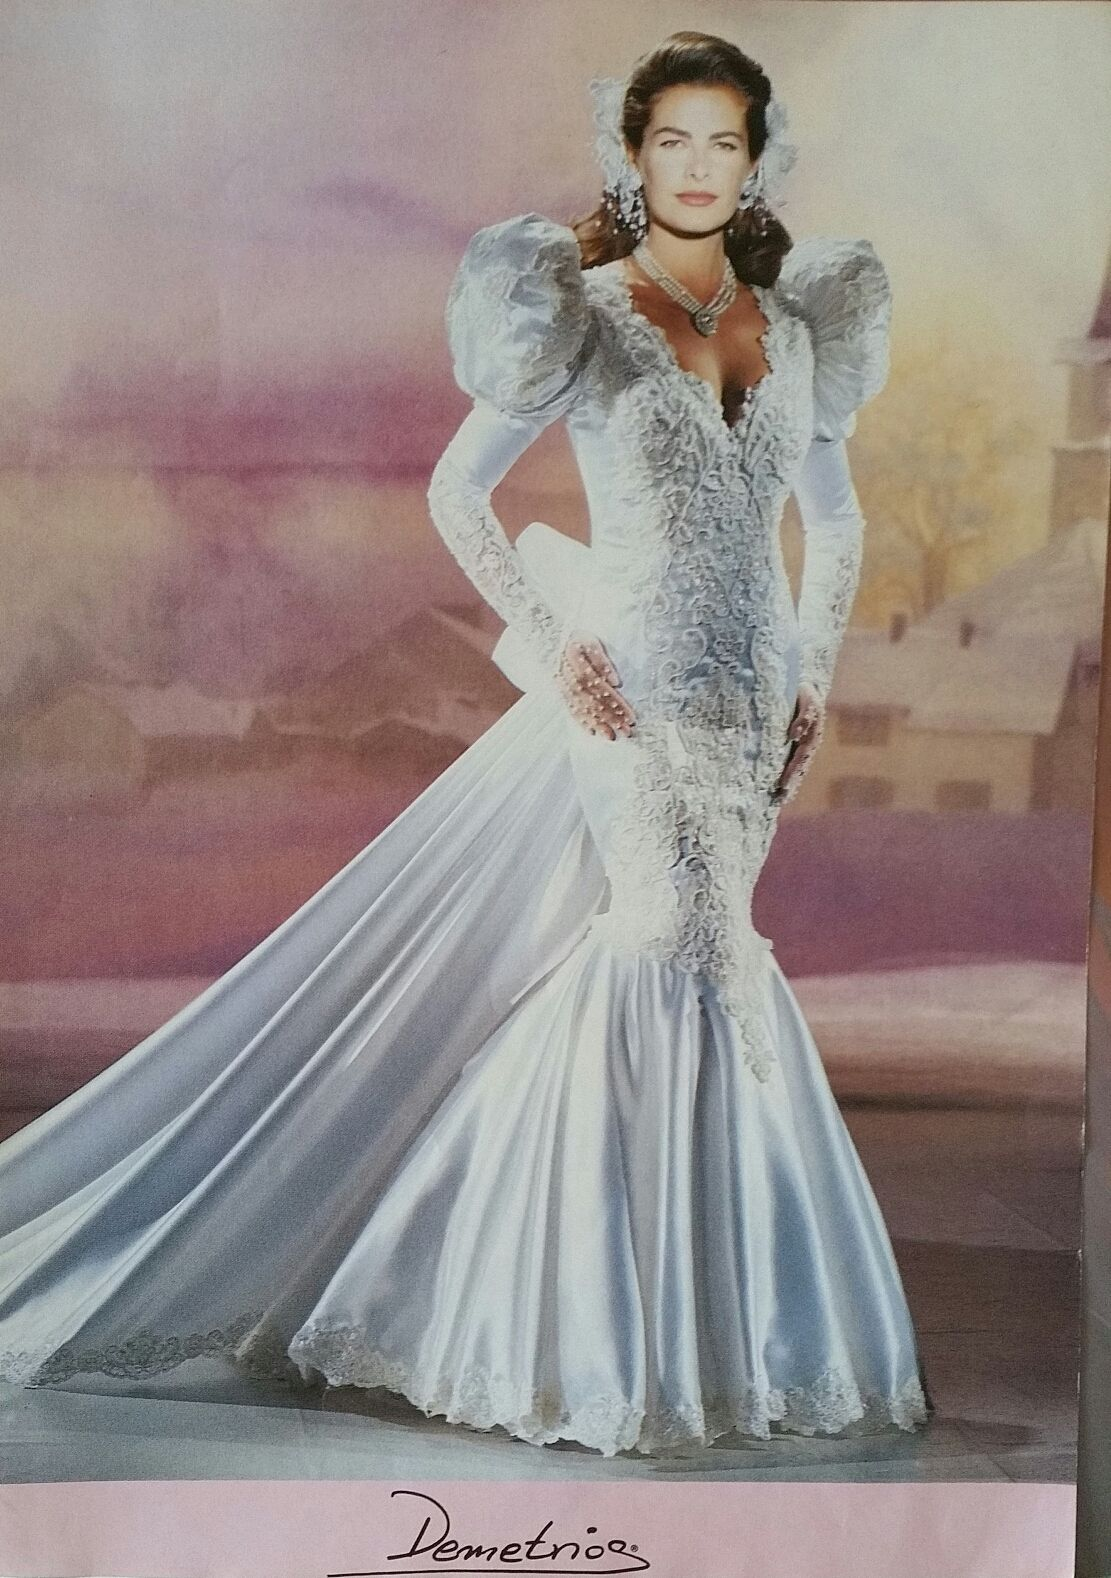 Mermaid dress Demetrios 1993, similar